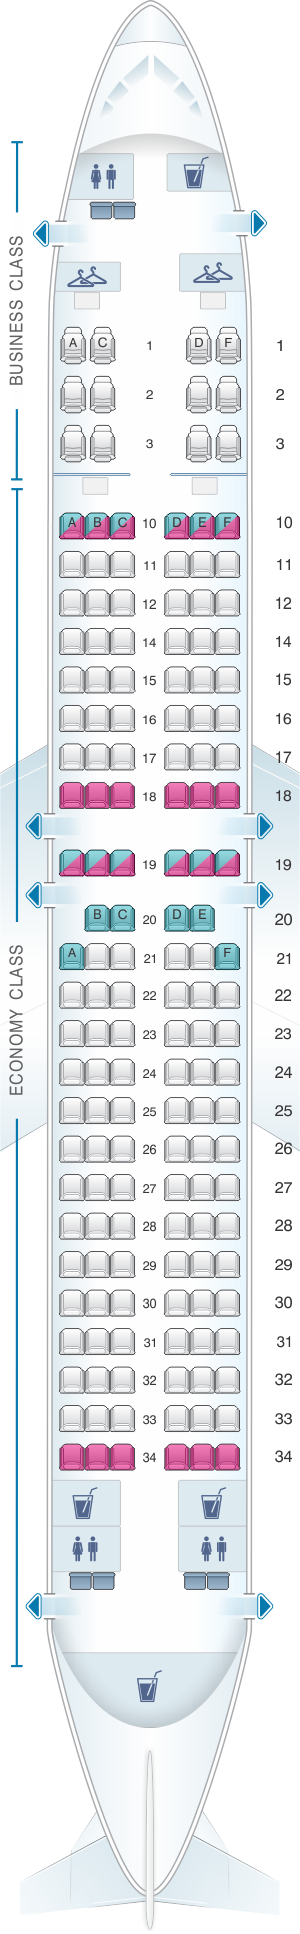 Seat map for Oman Air Boeing B737 800 V3